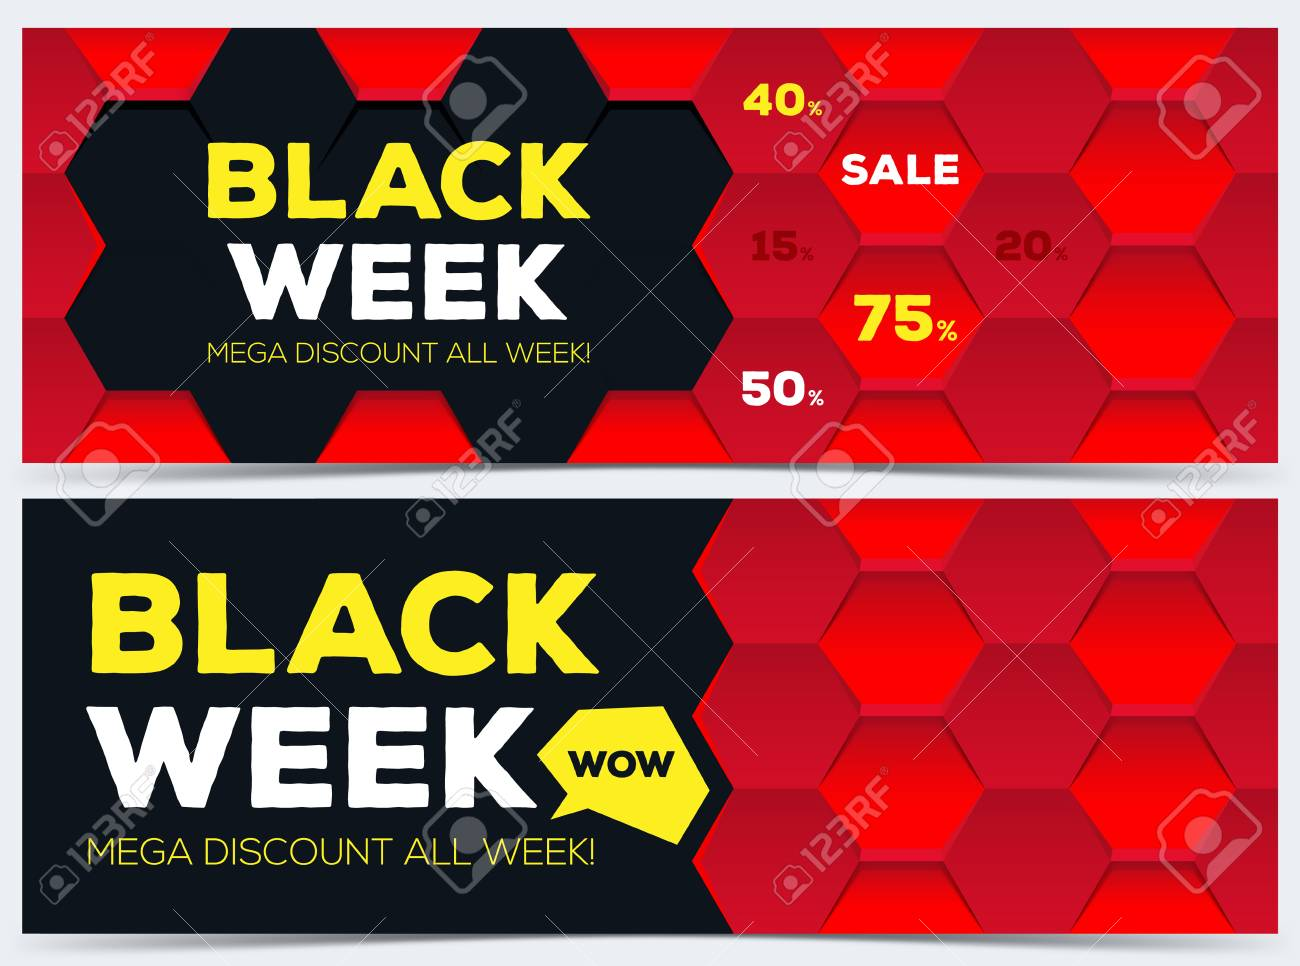 Black Week Sale Black Week Sale Black Week Banner Sale Banner Sale Mega Discount